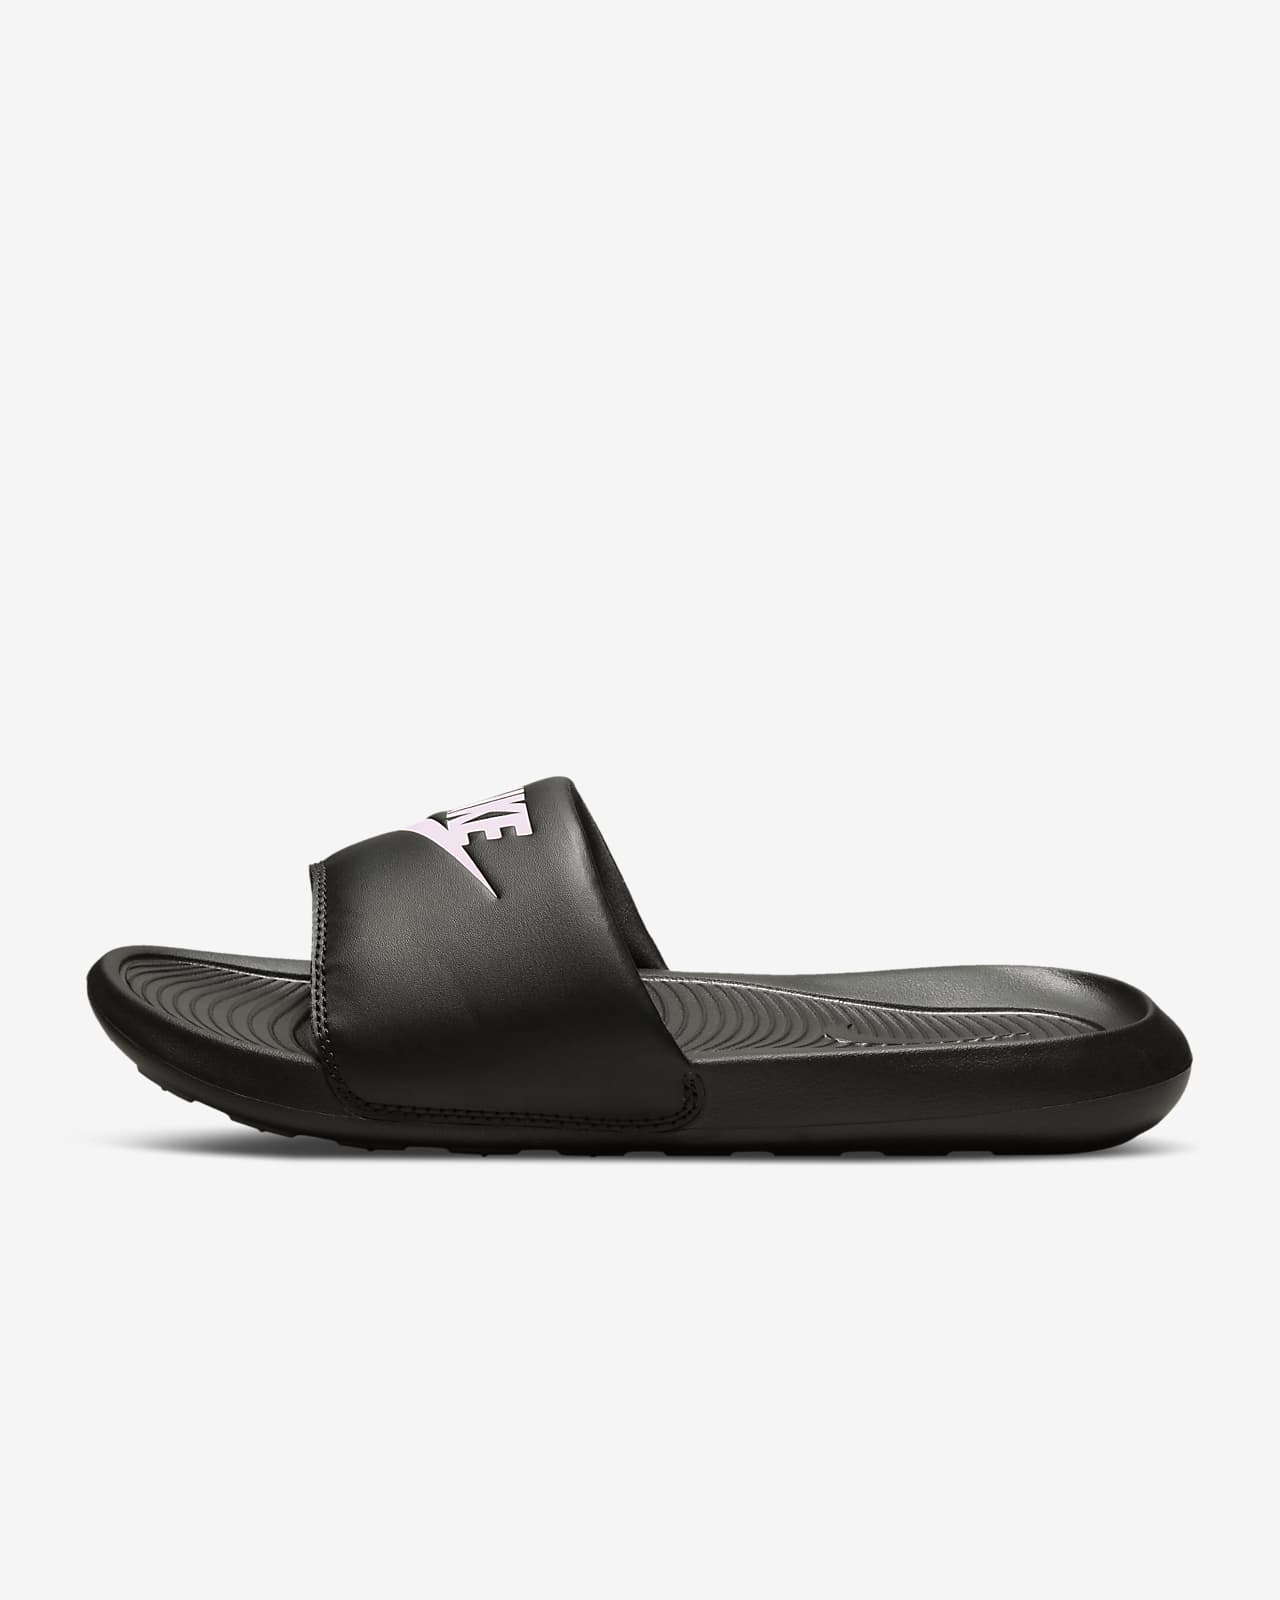 Nike Victori One Women's Slide